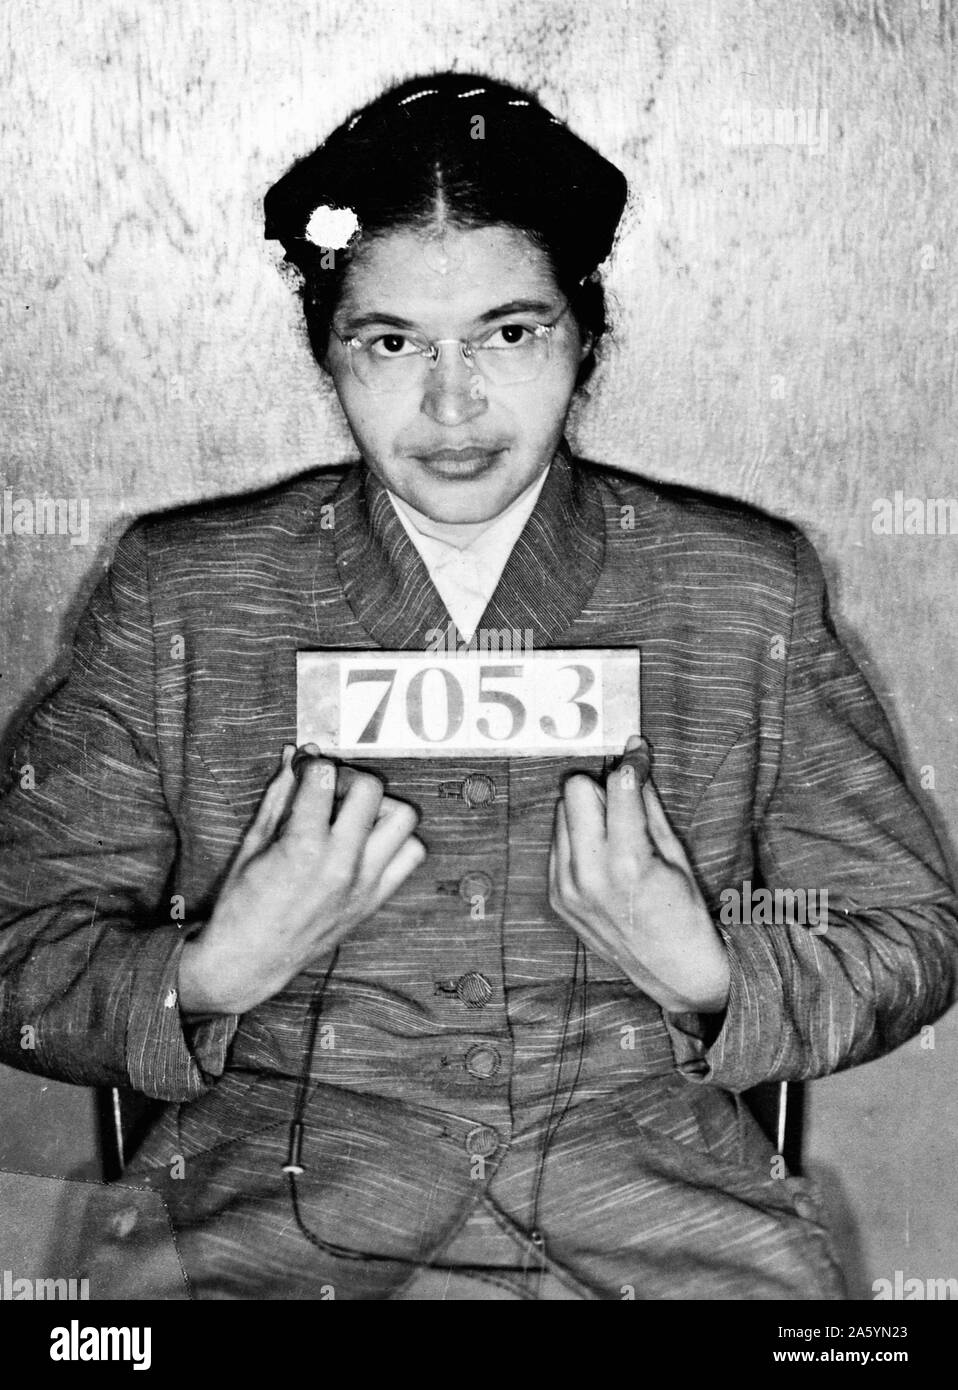 Rosa Parks Mug Shot 1955. Arrested for refusing to relinquish her seat on a bus in Montgomery, Alabama. Stock Photo